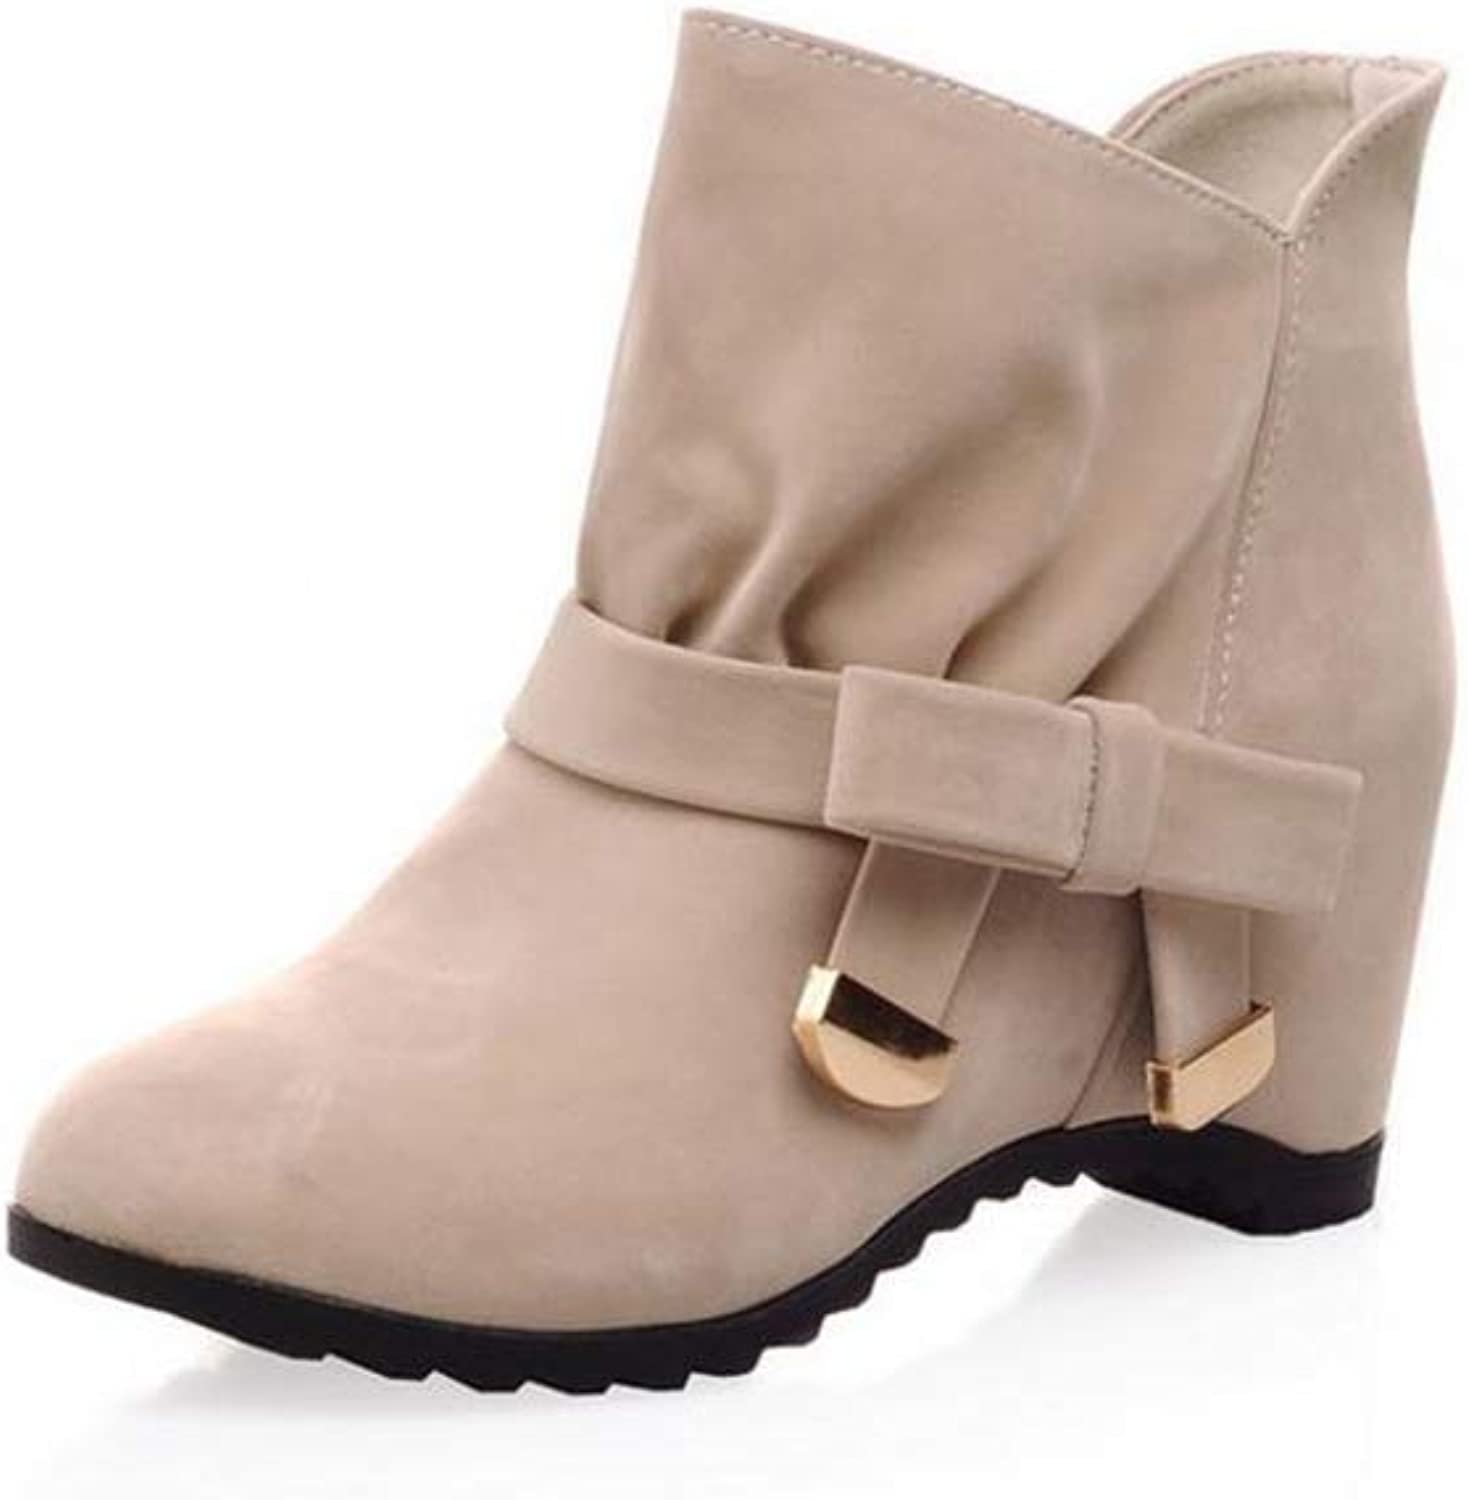 IINFINE Ankle Boots for Women Mid Chunky Block Stacked Heels Round Toe Booties